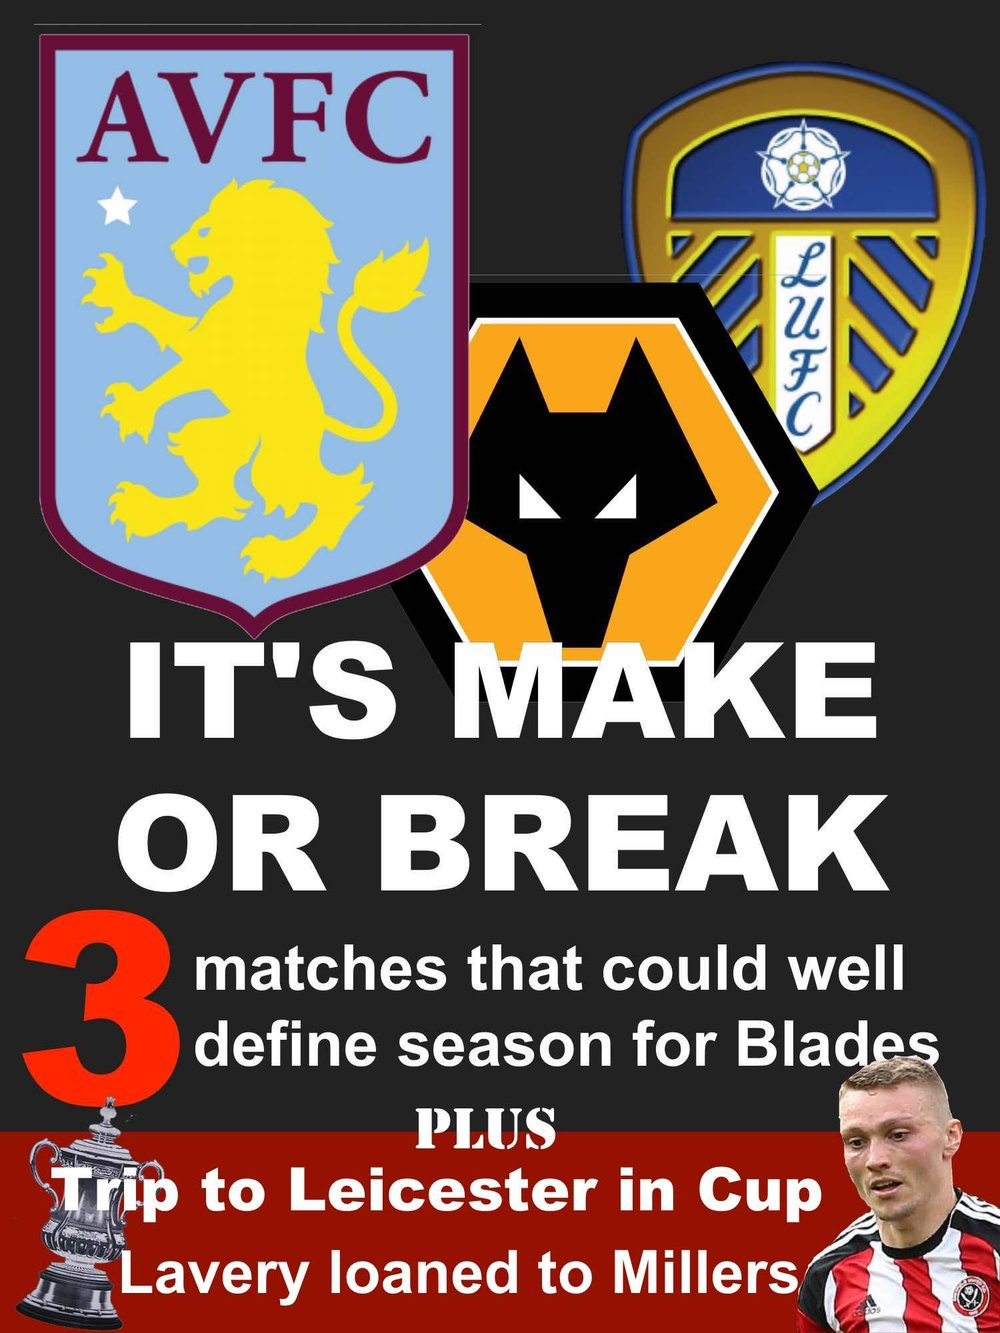 Sheffield United are facing make or break in promotion bid as rivals Aston Villa visit Bramall Lane, the first of three huge matches for the Blades